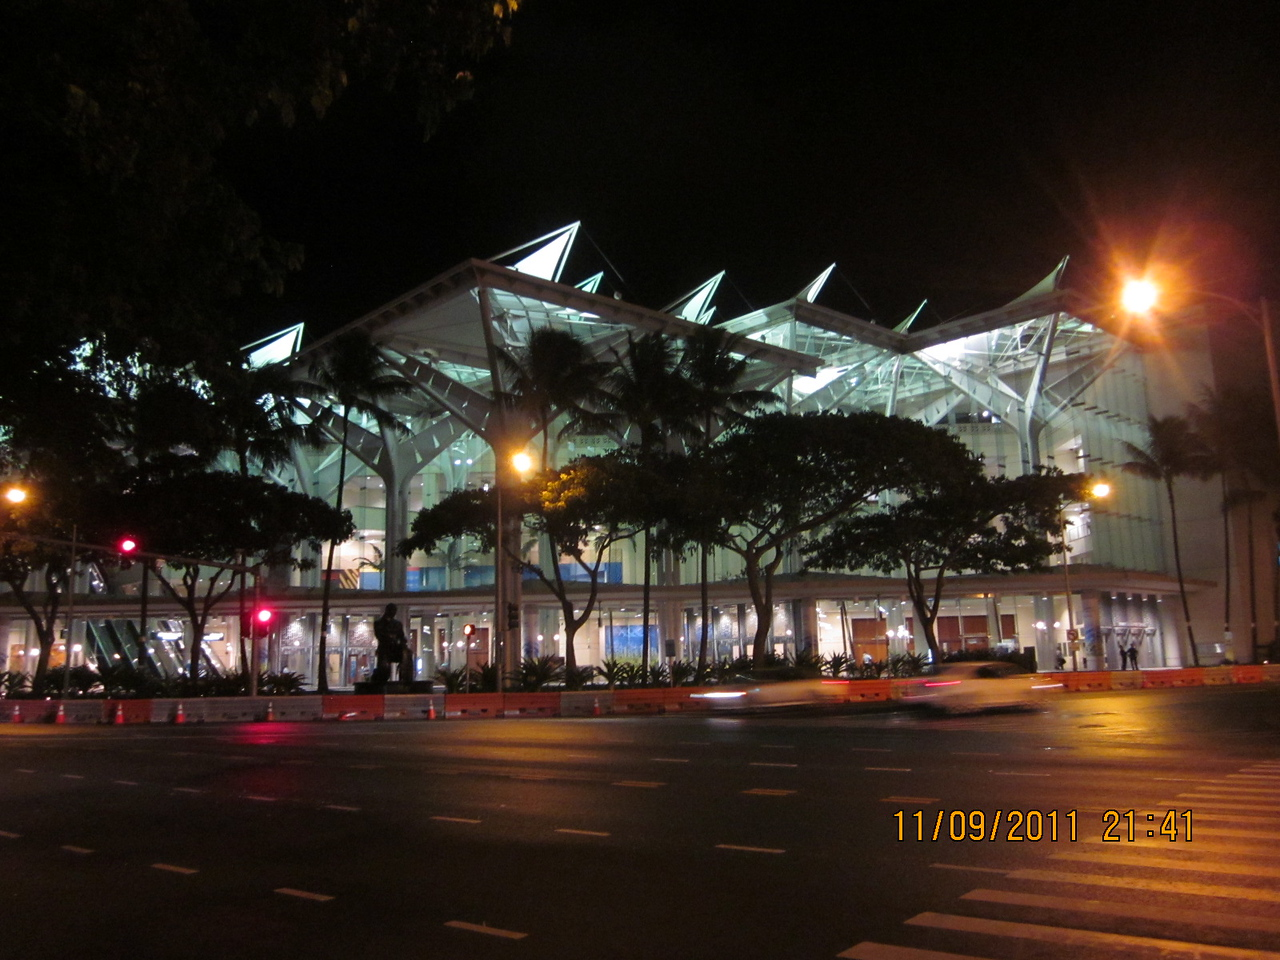 This is the Hawaii Convention Center where hosts 21 countries APEC